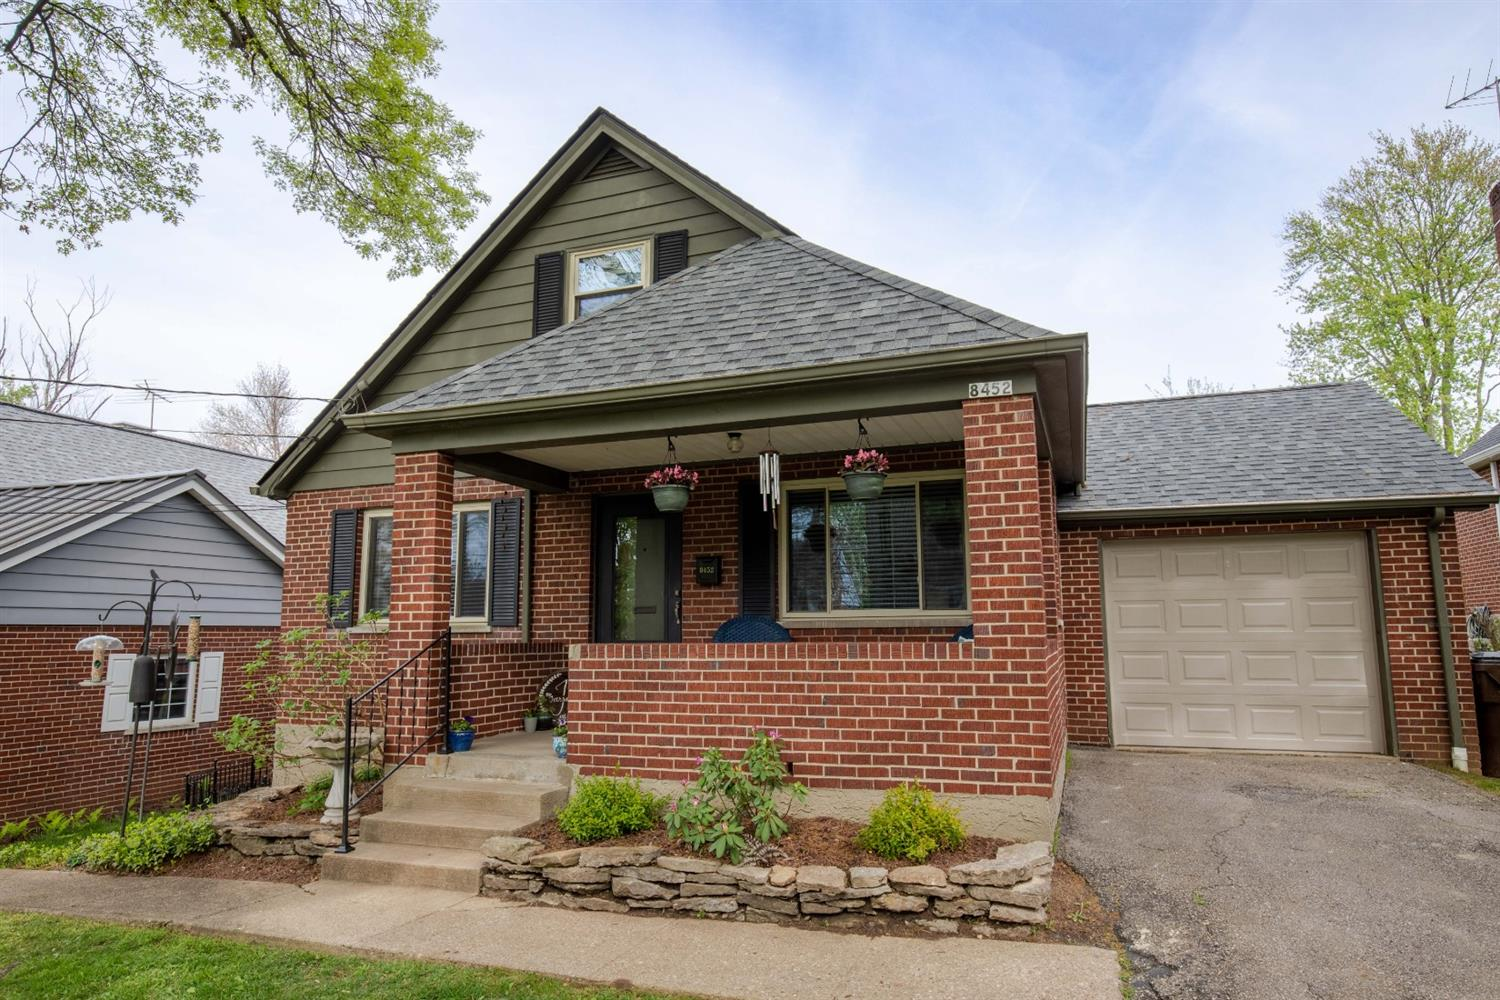 8452 Wexford Ave Dillonvale, OH